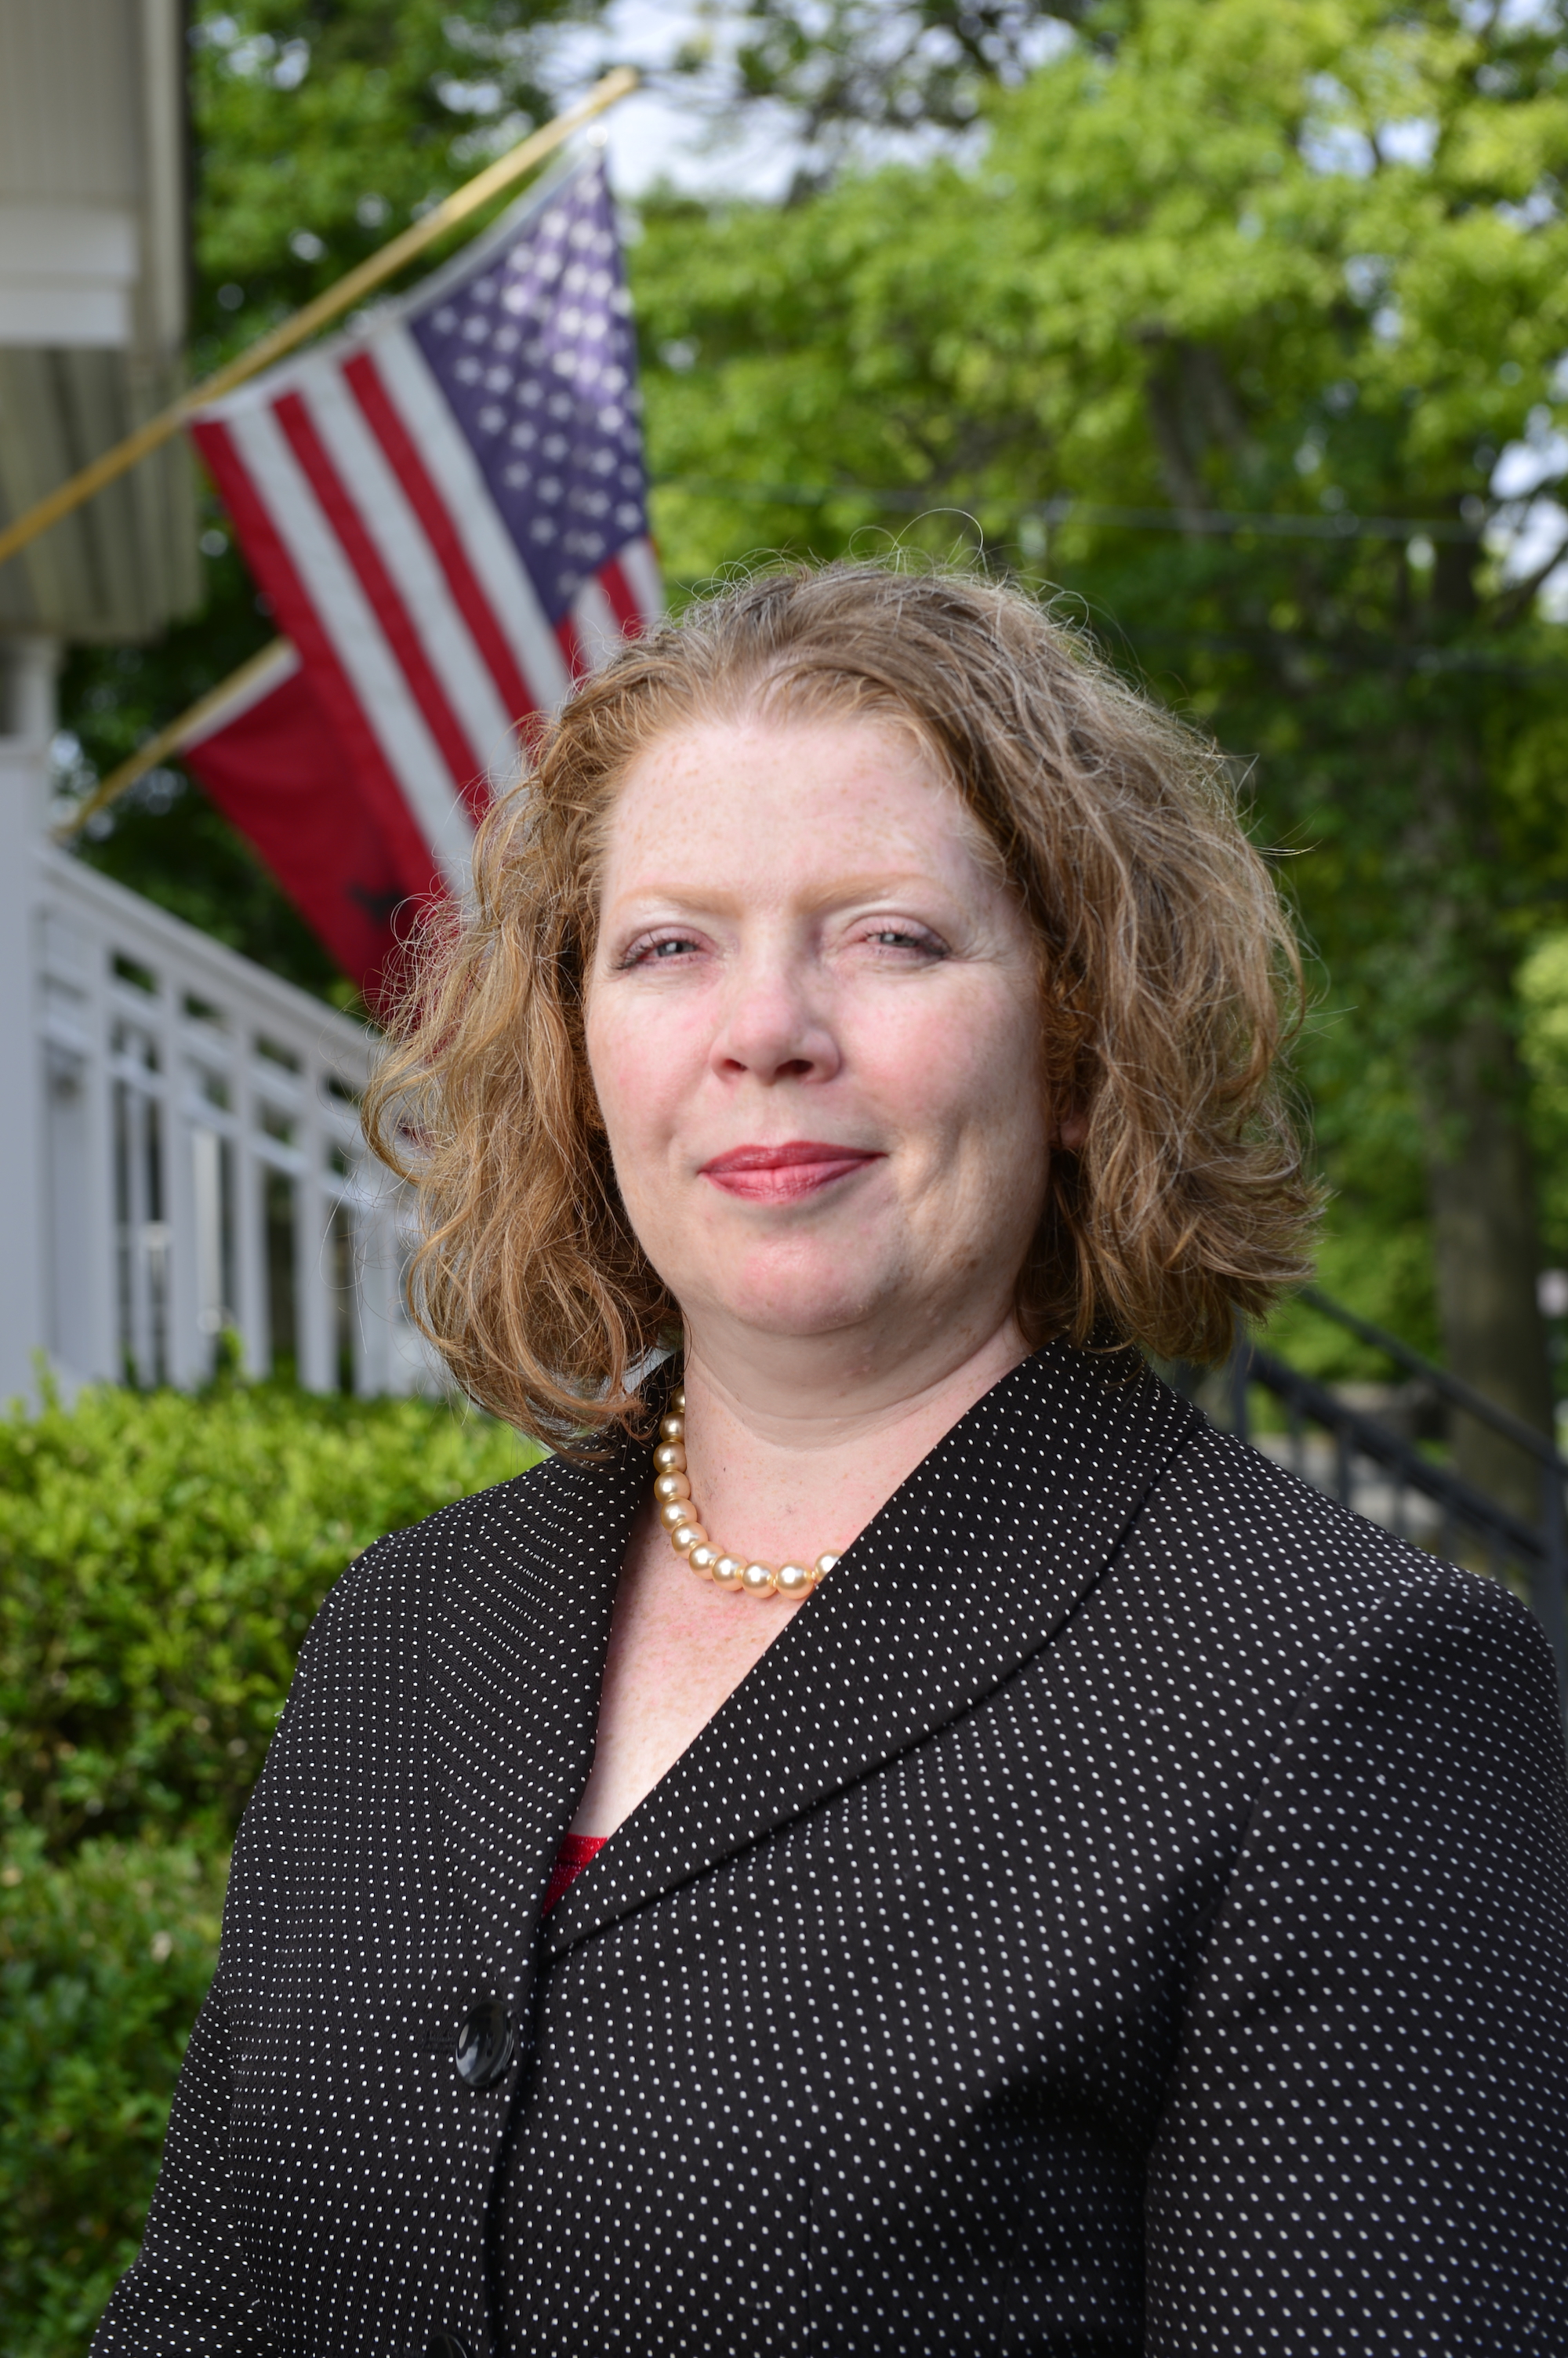 Margaret O'Donnell | Manager of Military and Veteran Engagement Programs in Rutgers Business School, Rutgers University